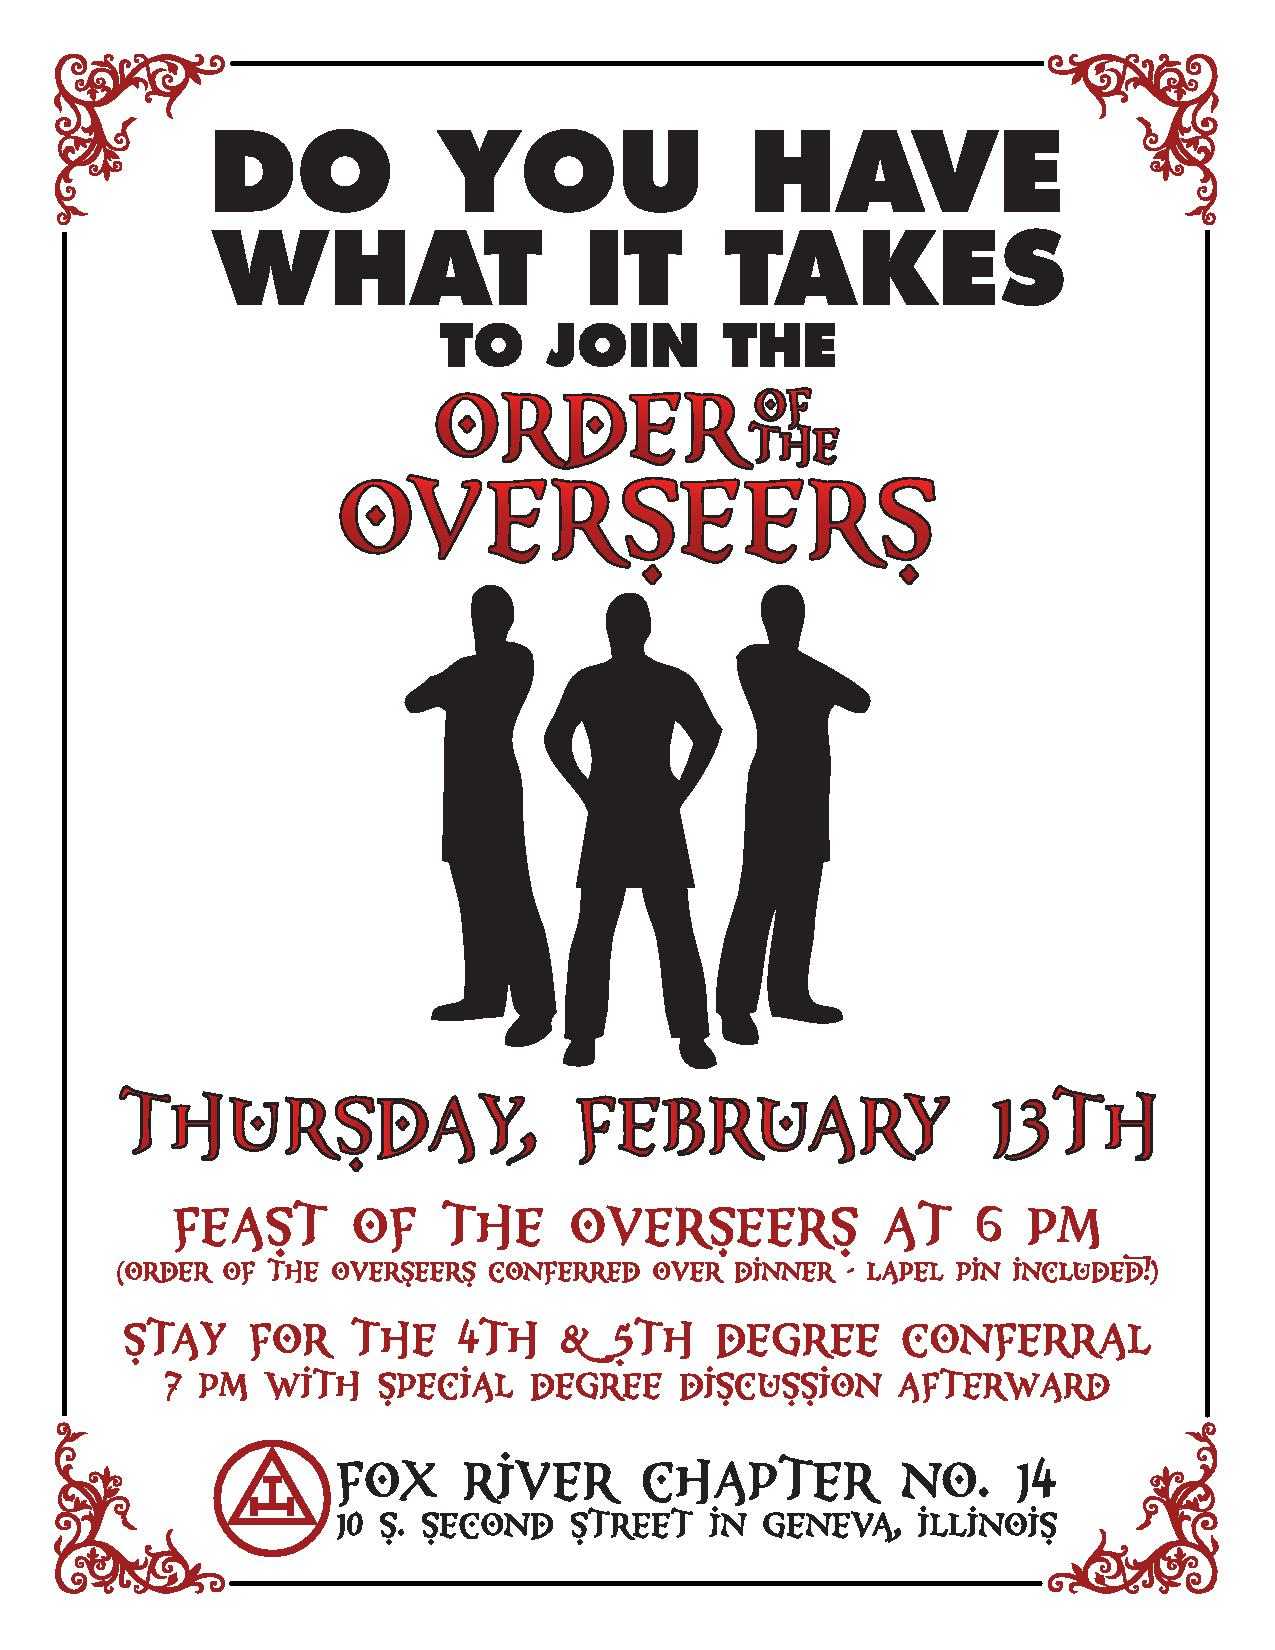 order of the overseers 4th 5th degree conferral grand royal come out to fox river chapter 14 for the feast and order of the overseers as well as the presentation of the 4th 5th degrees